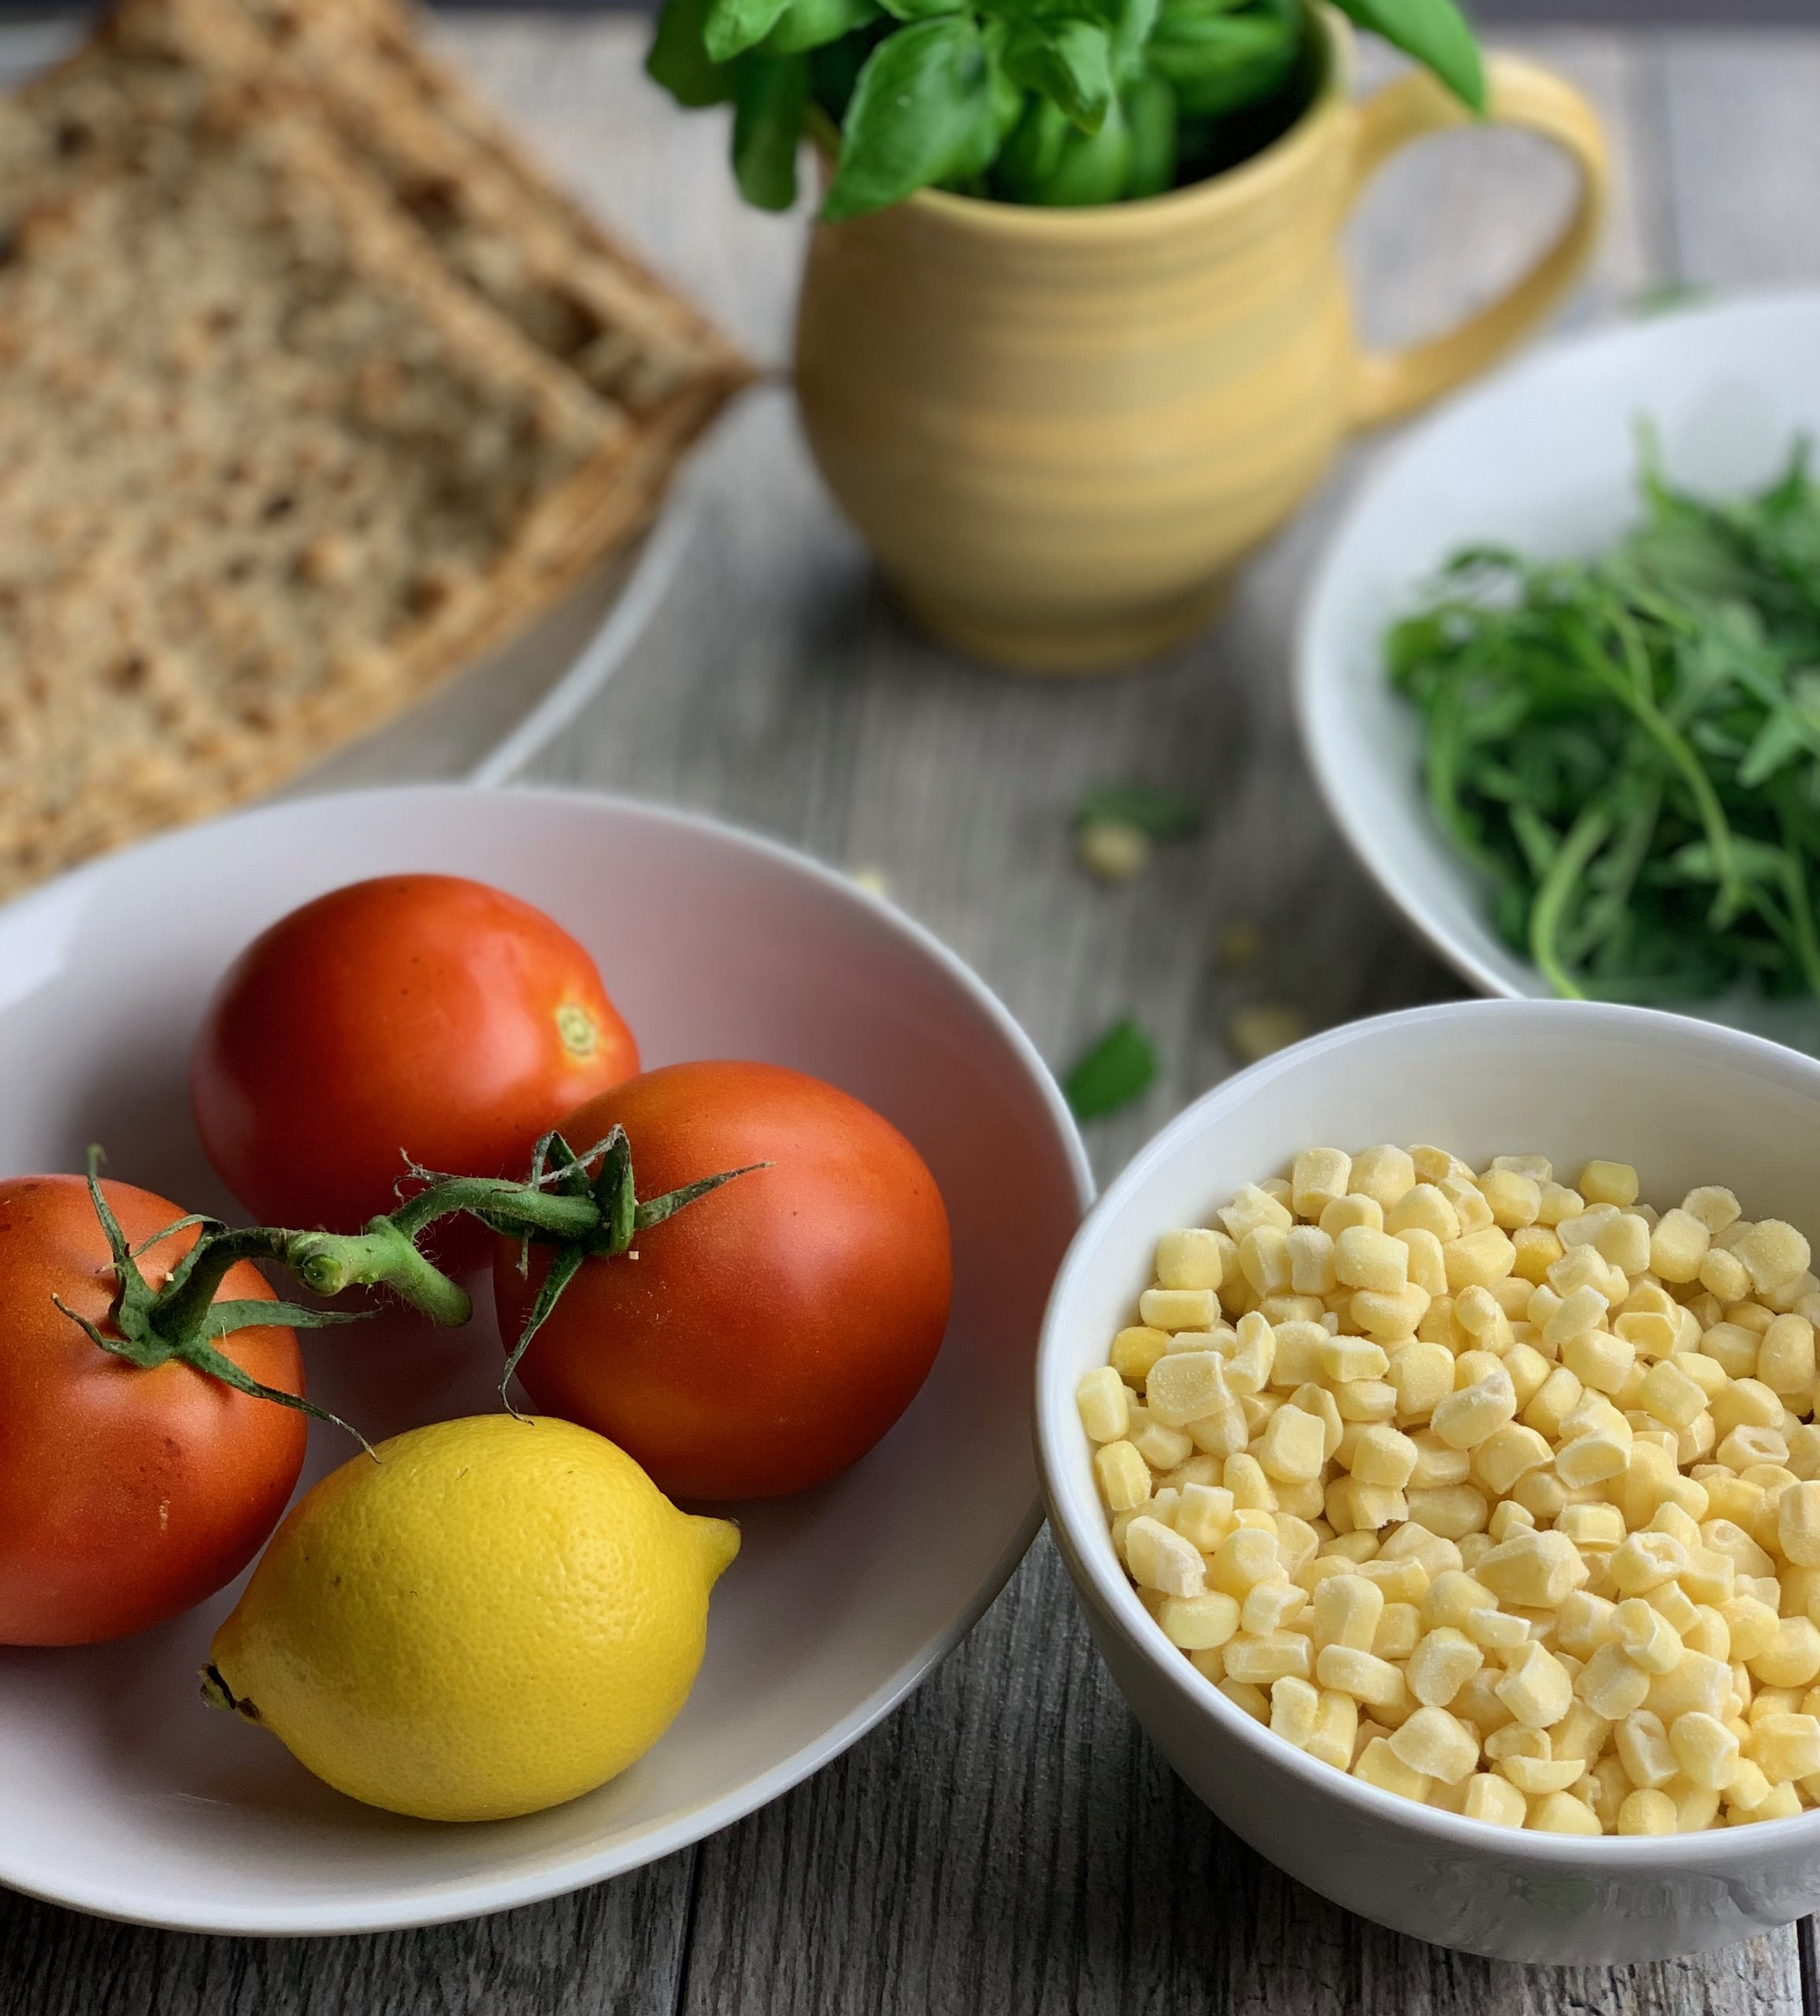 Ingredients for the Sweet Corn and Tomato Flatbread